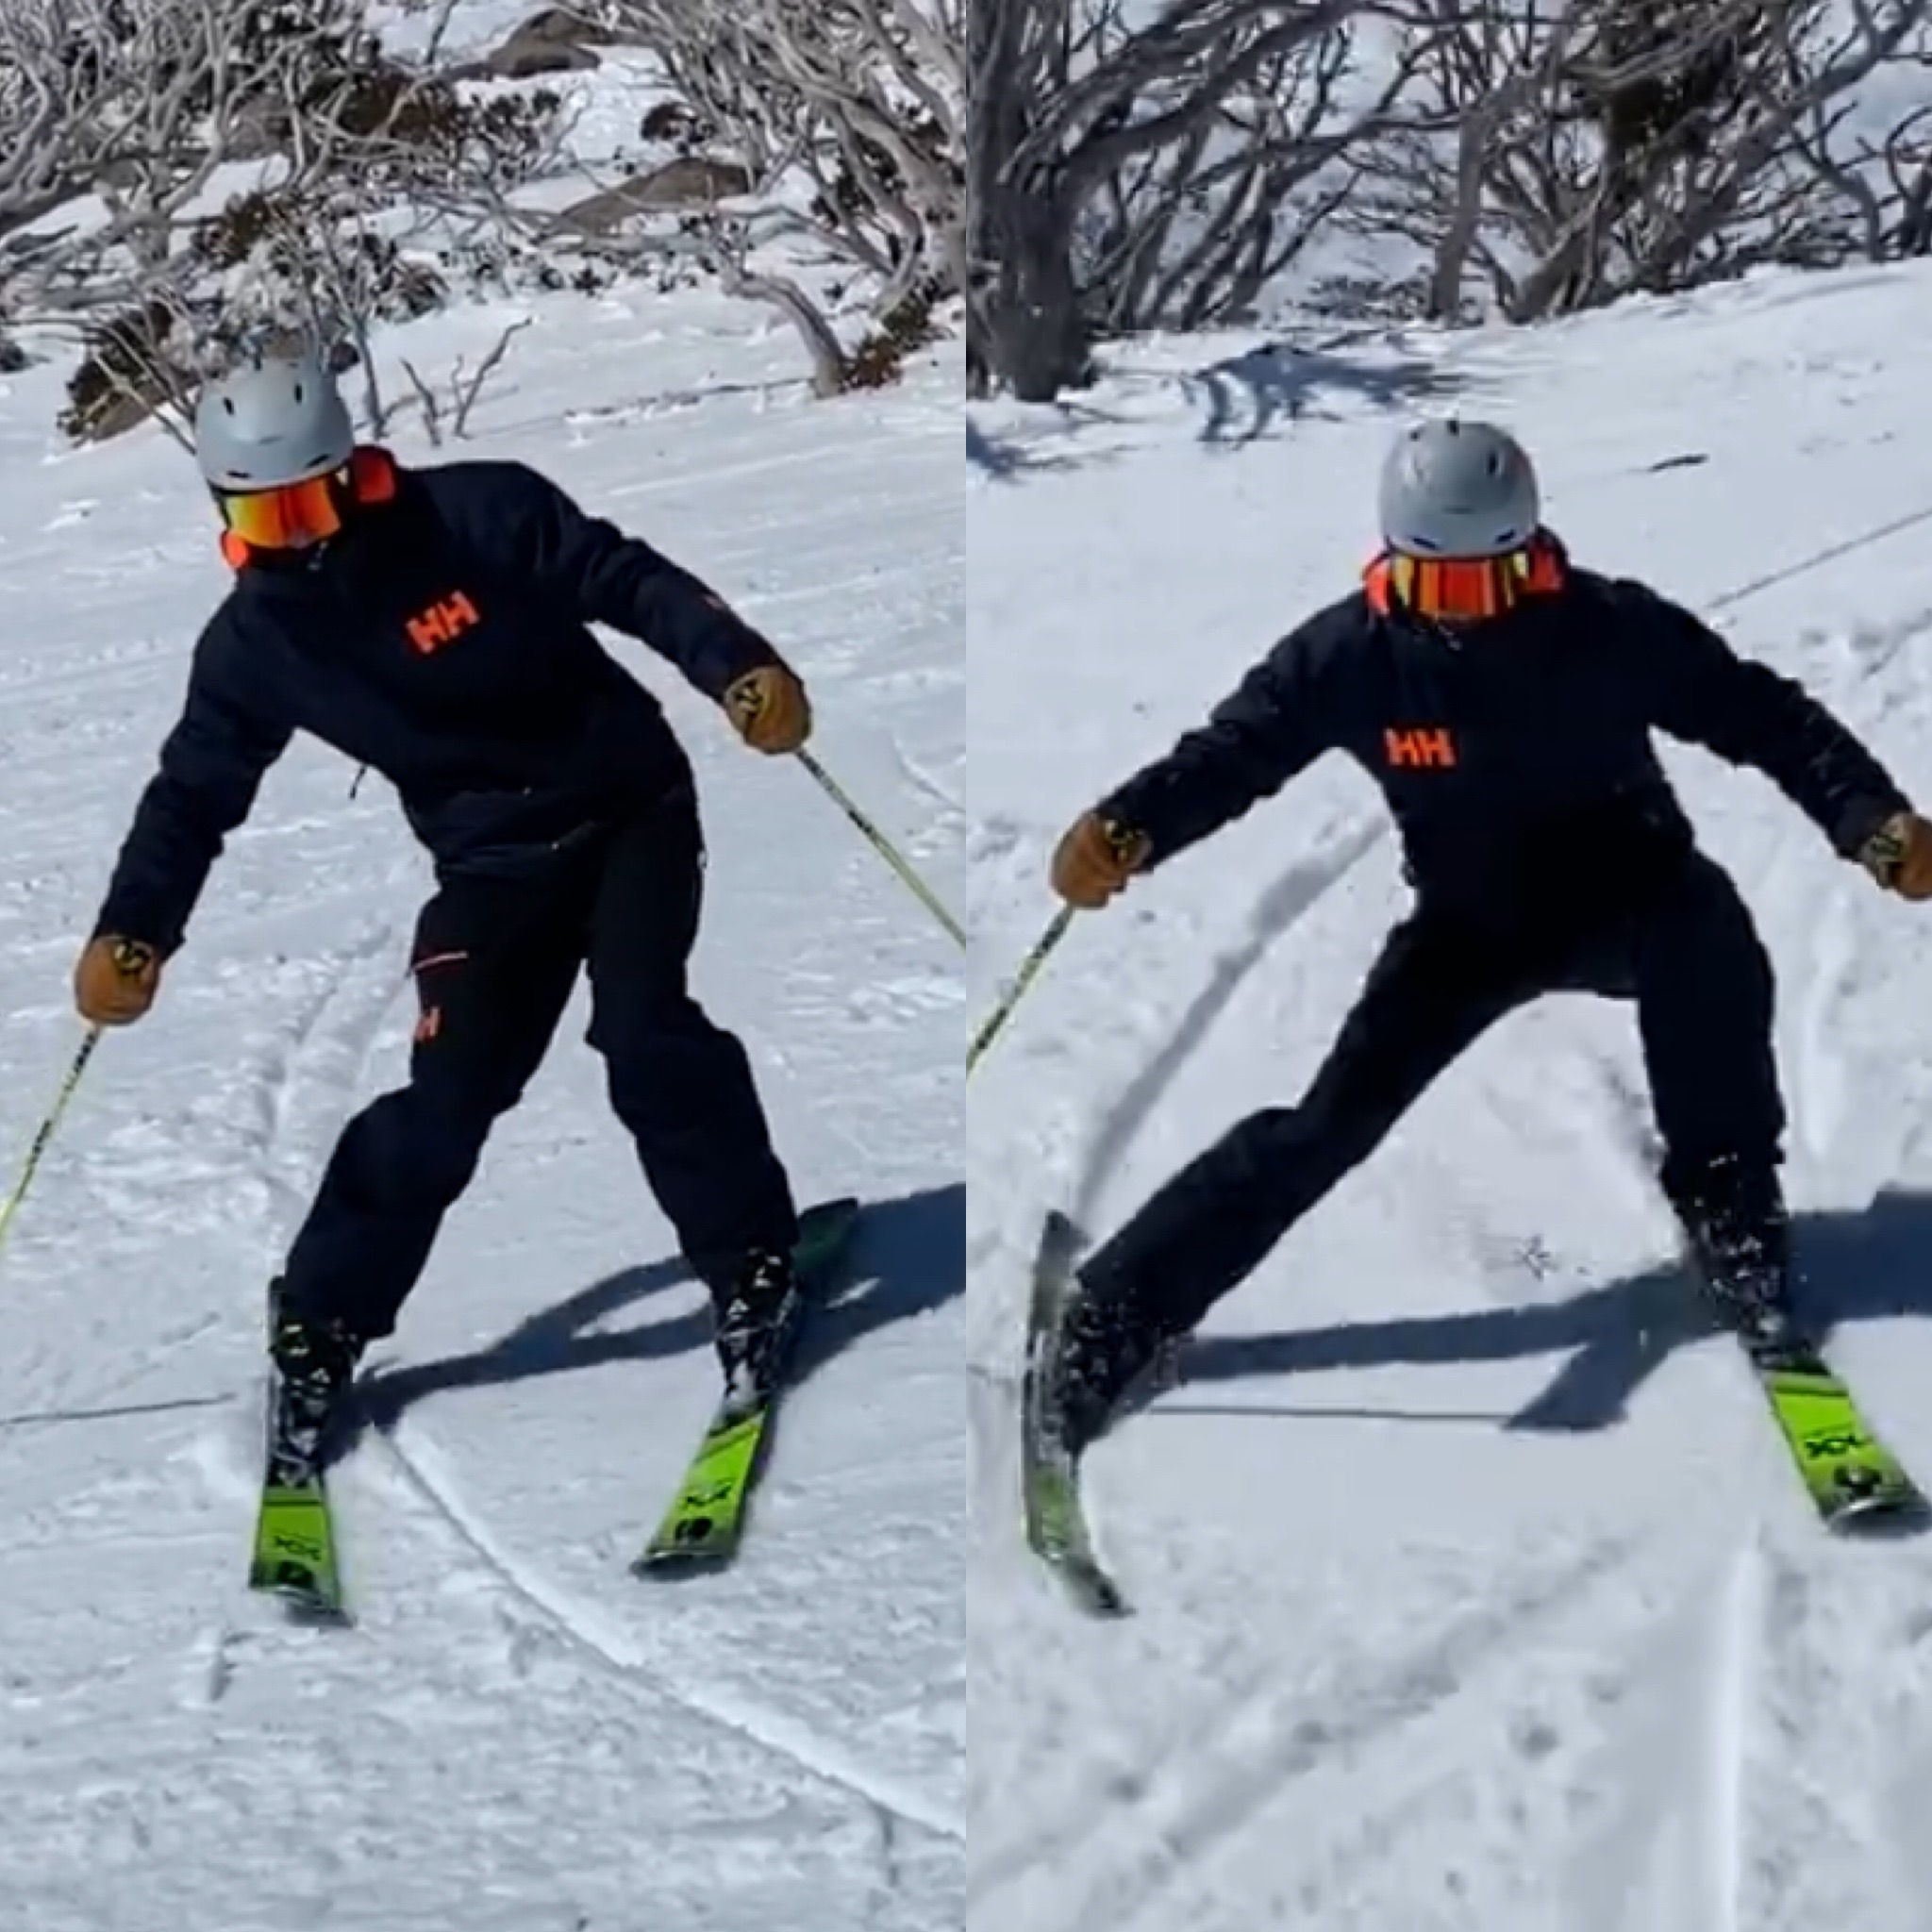 Notice the difference in ski bend between ~45 degrees and ~60 degrees